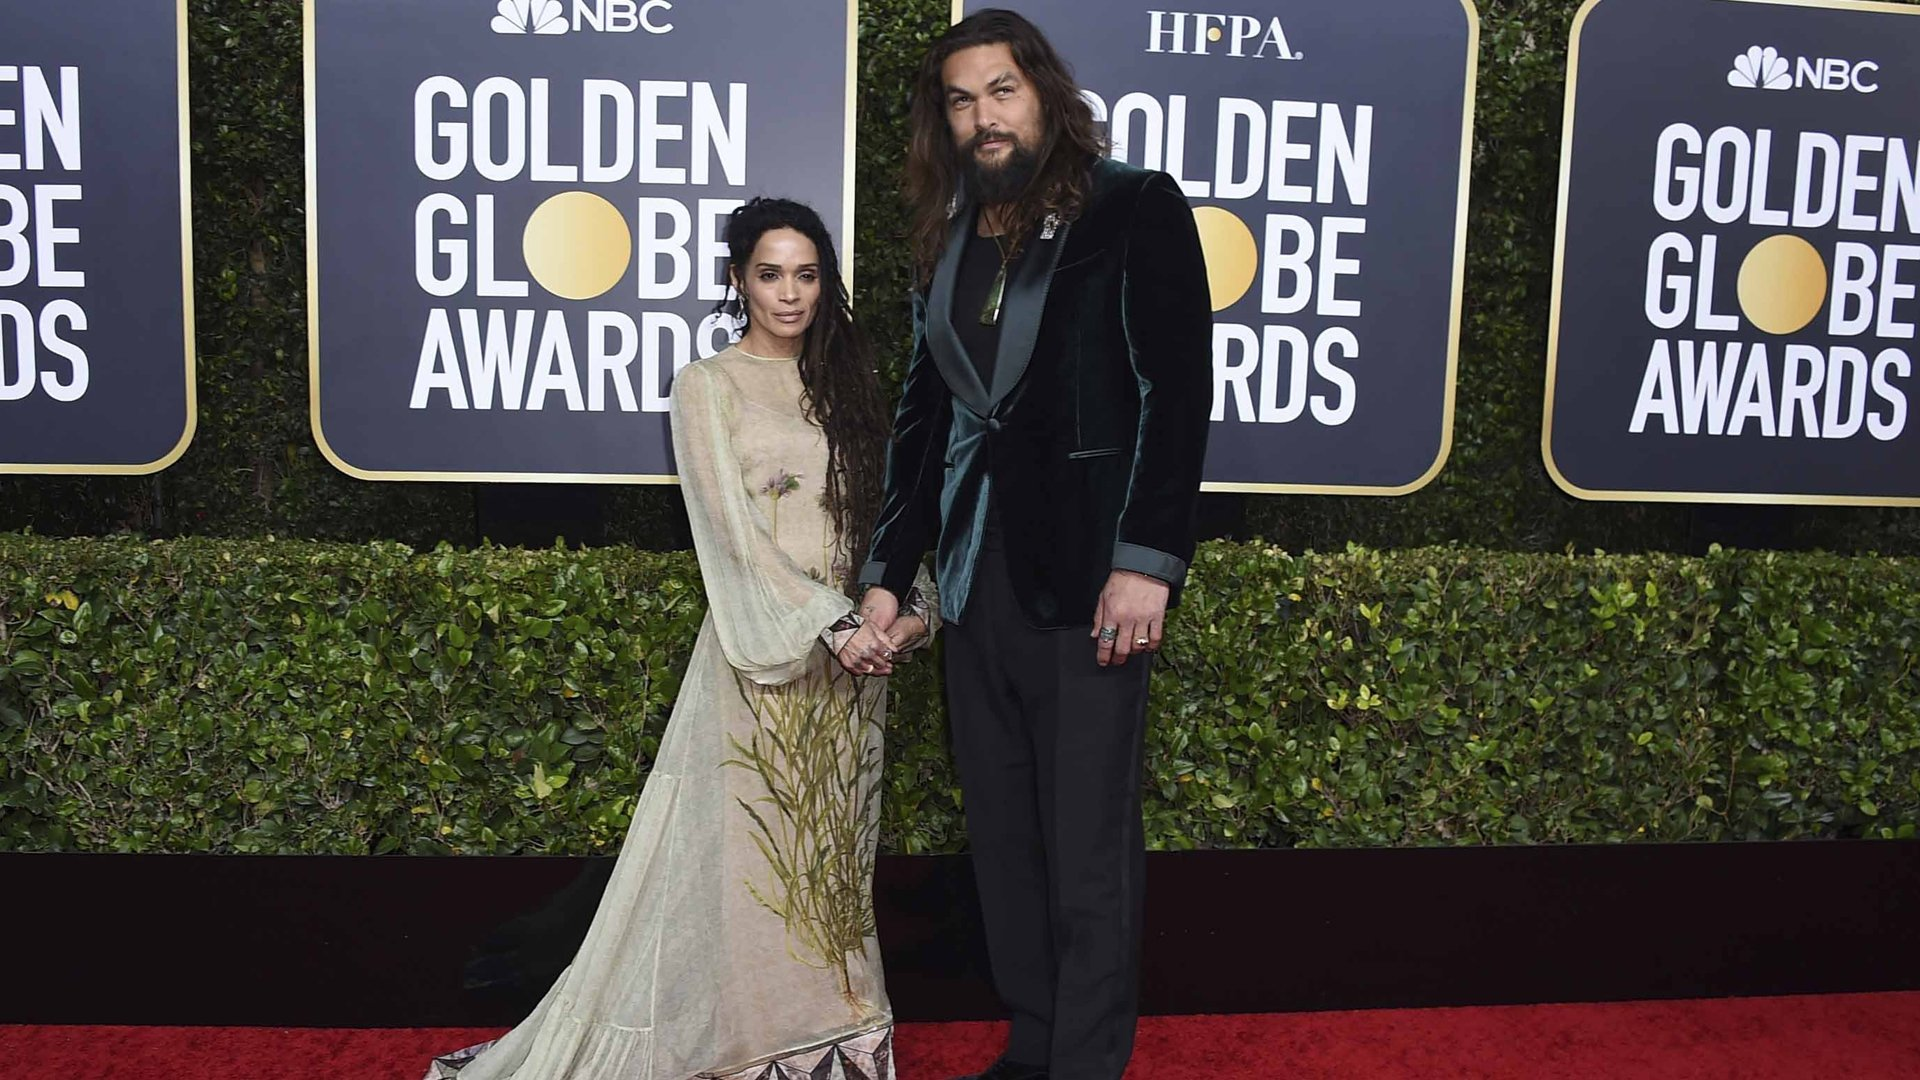 Jason Momoa and wife, Lisa Bonet, attended the 2020 Golden Globe Awards on Jan. 5, 2020.